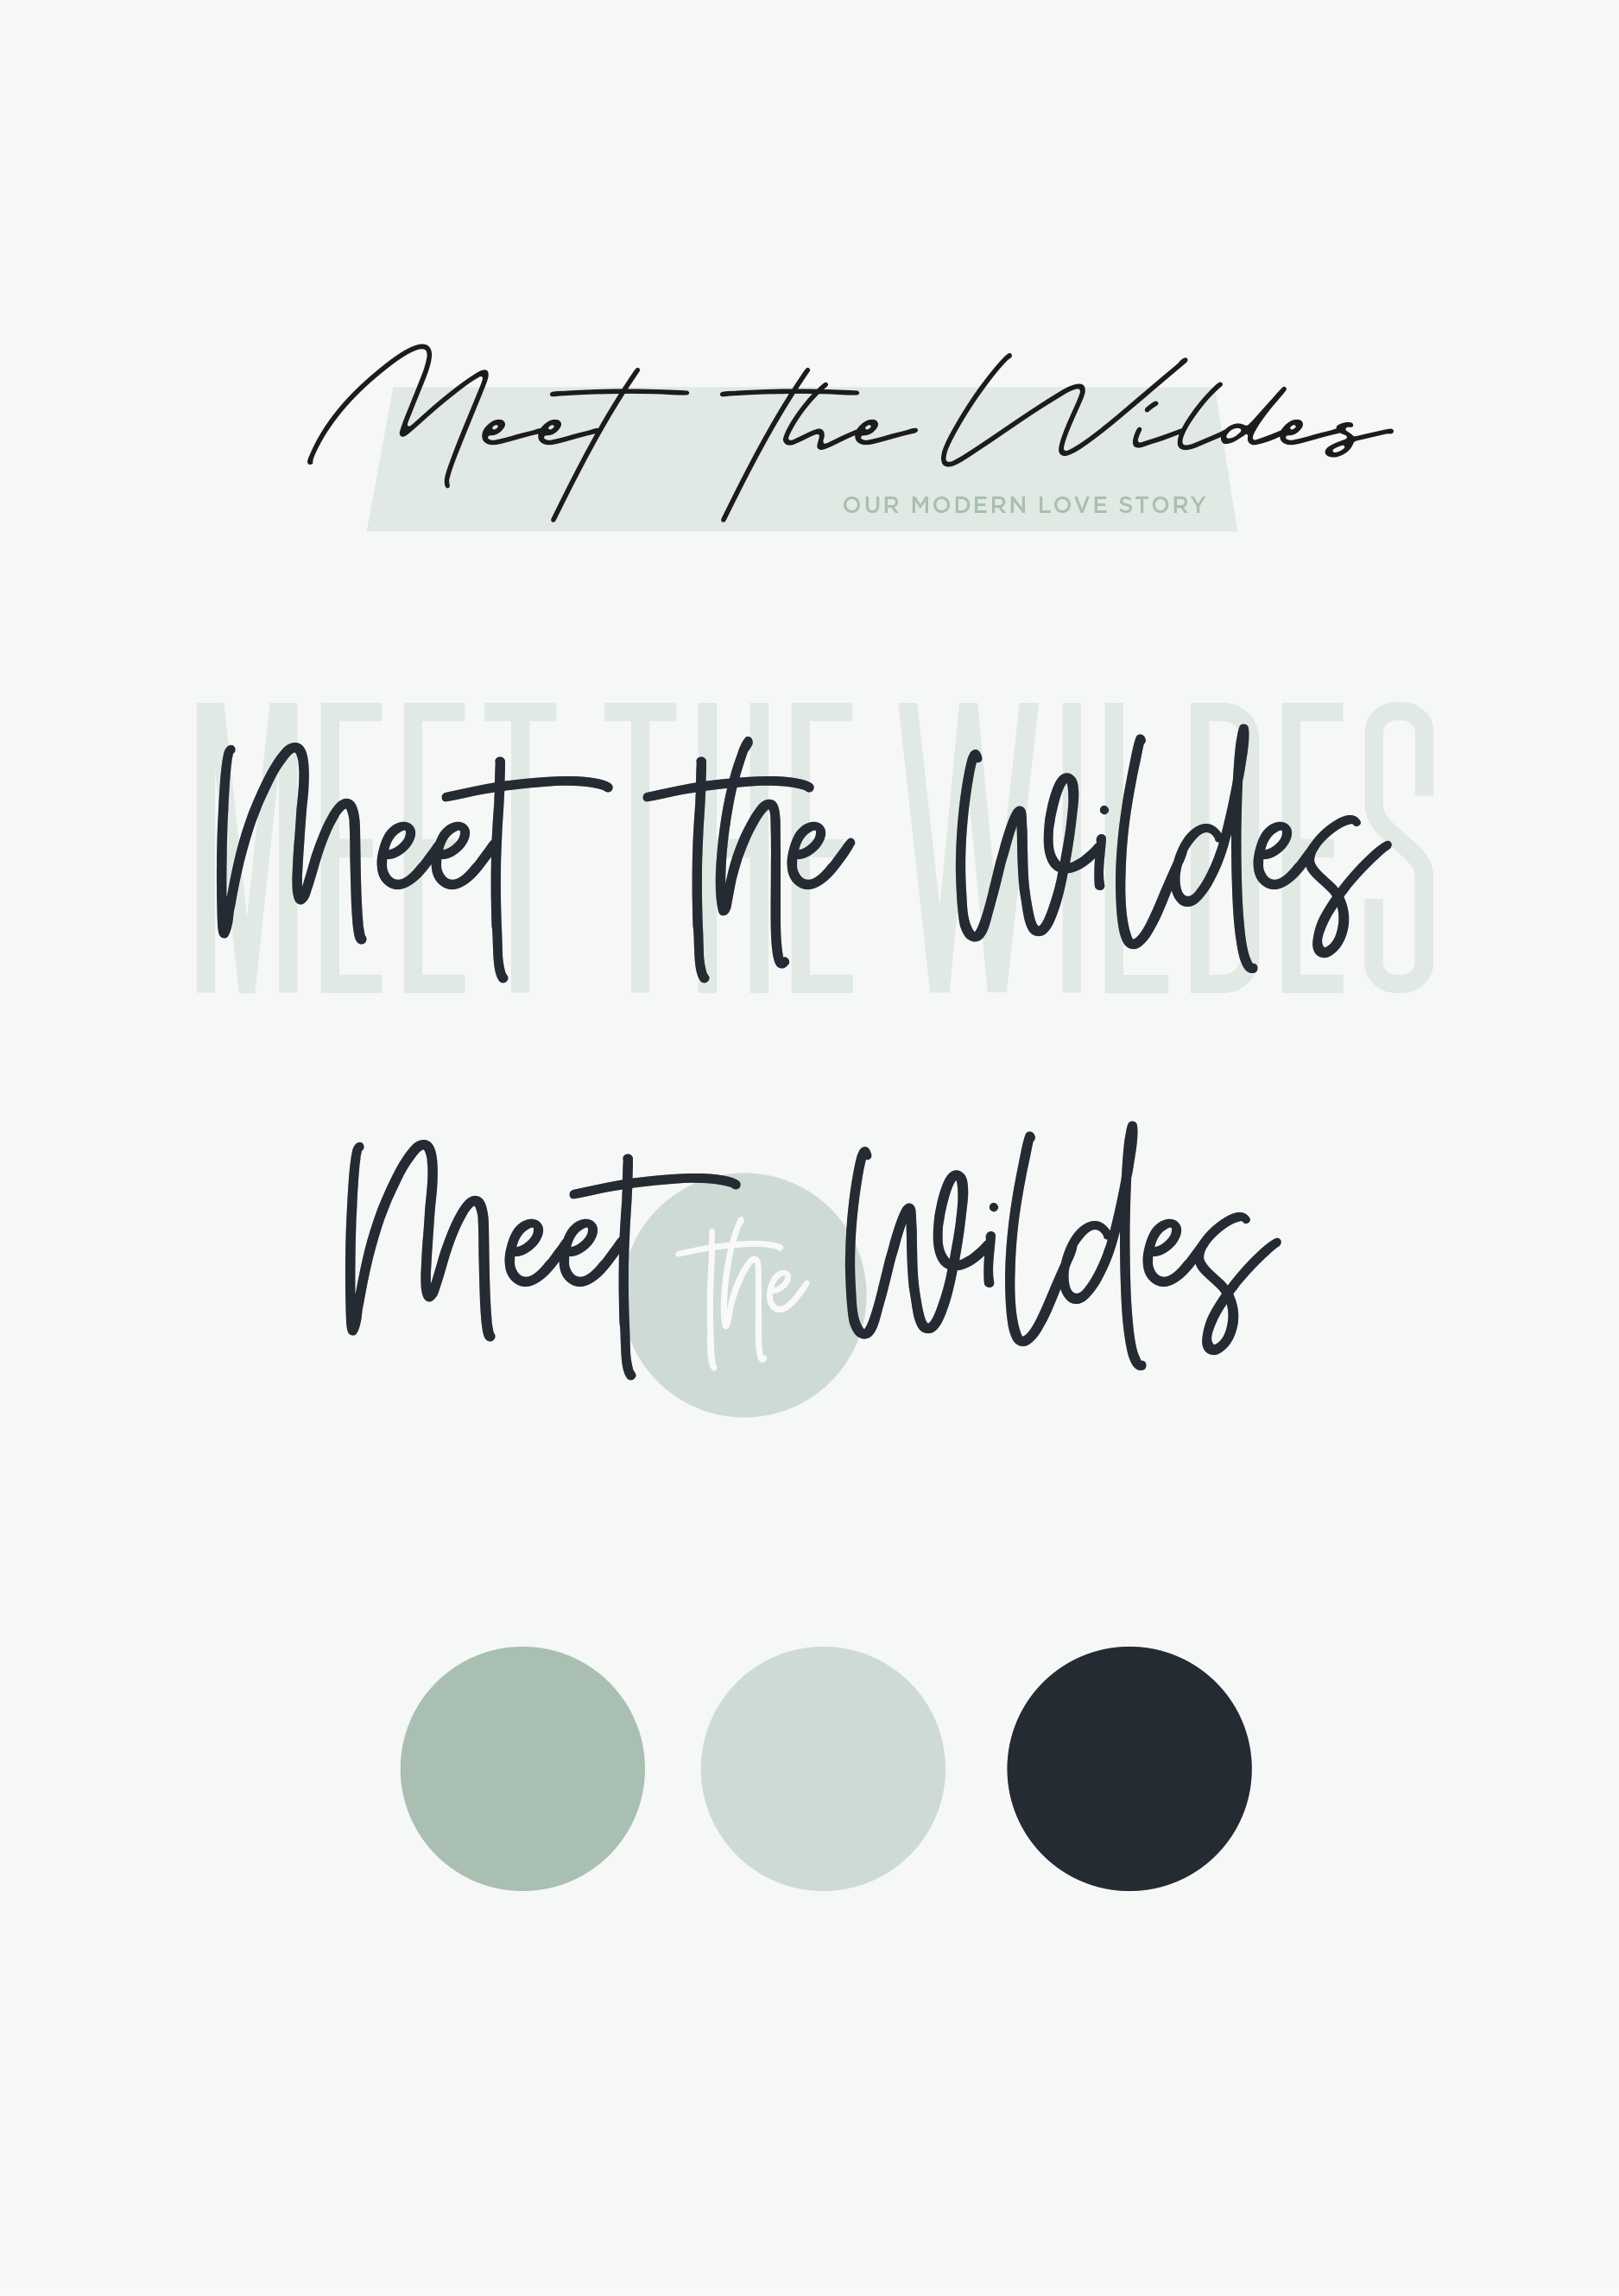 Initial development of new branding/header design for Meet the Wildes, family & lifestyle blog - Designs by Kaye Huett, Wiltshire-based graphic designer